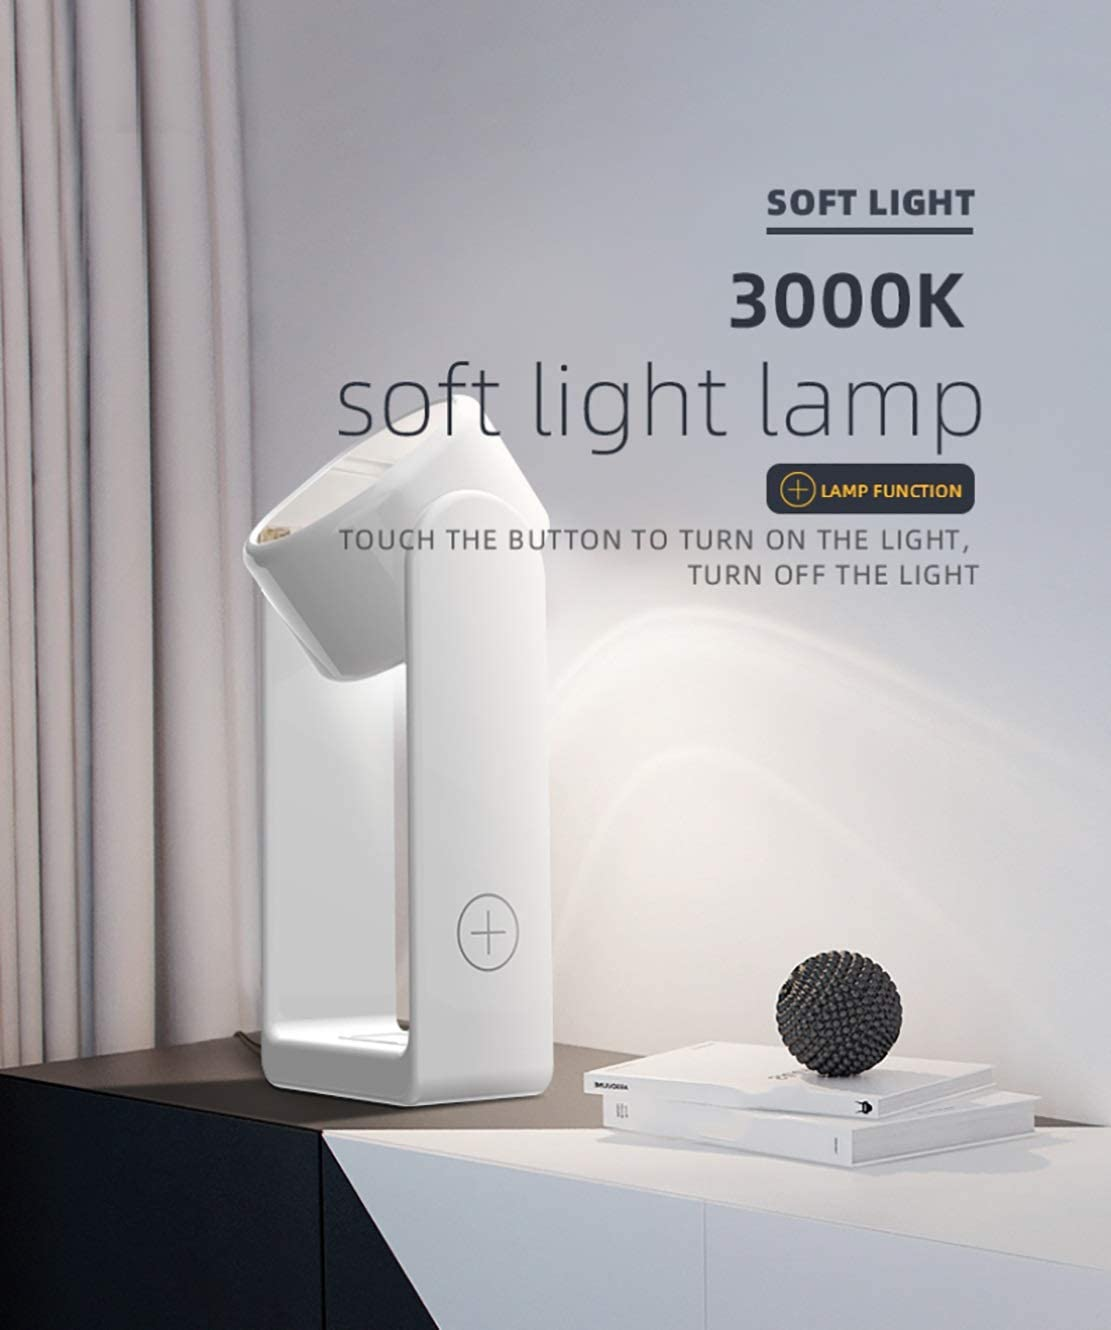 3 in 1 Ricarica Mobile, Multifunzionale LED Smart Touch Lampada cosmetico Specchio 360 ° Caricabatterie Wireless girante, Adatto for Qi dispositivi abilitati (Color : White) White